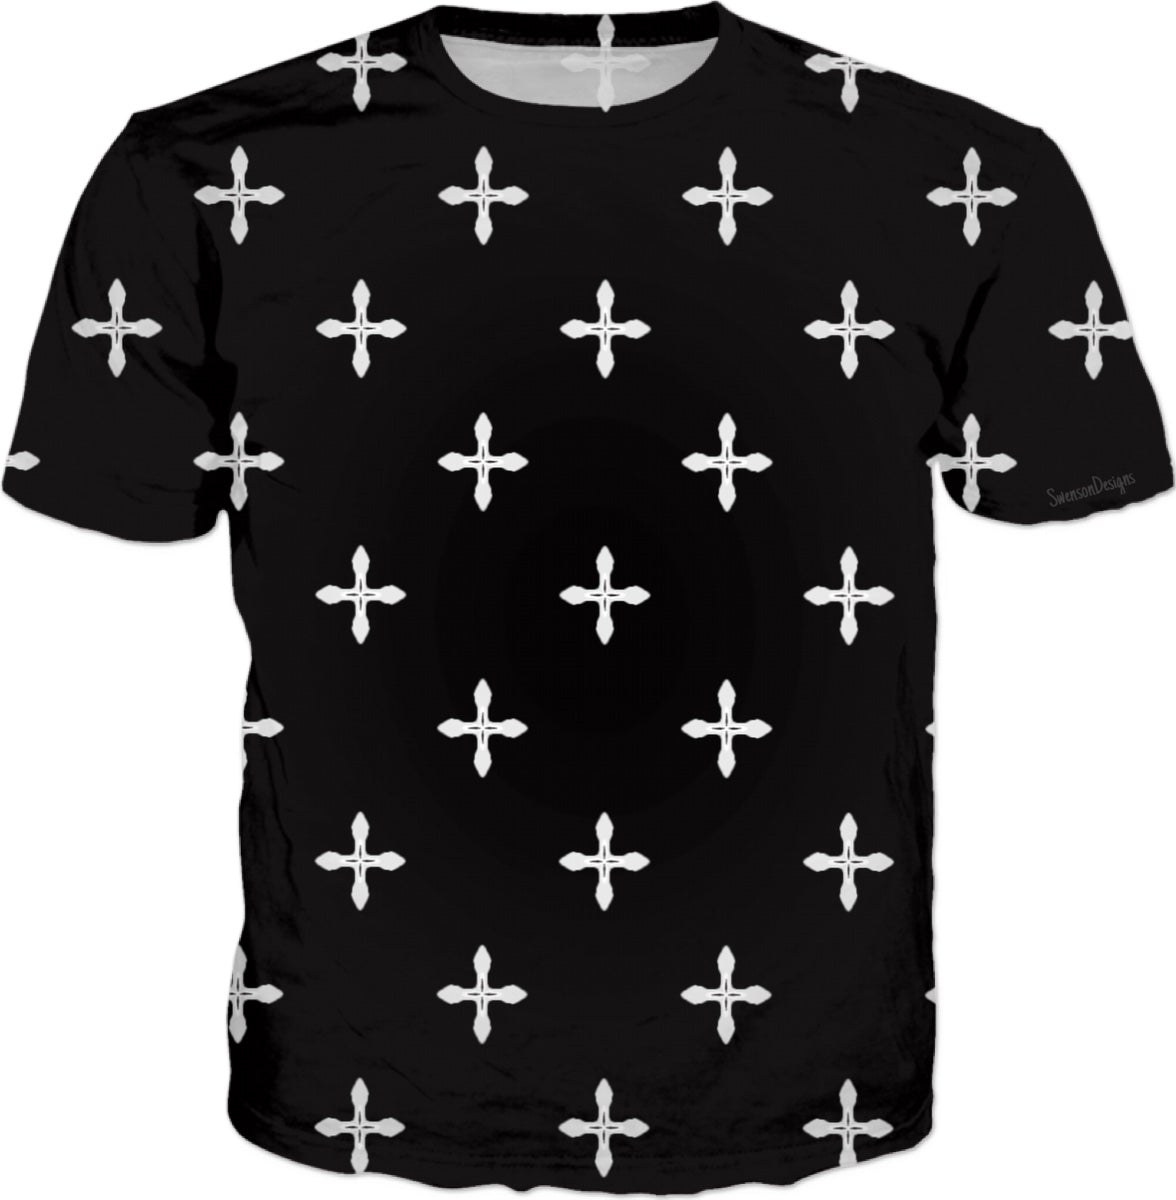 T-shirts Crosses182